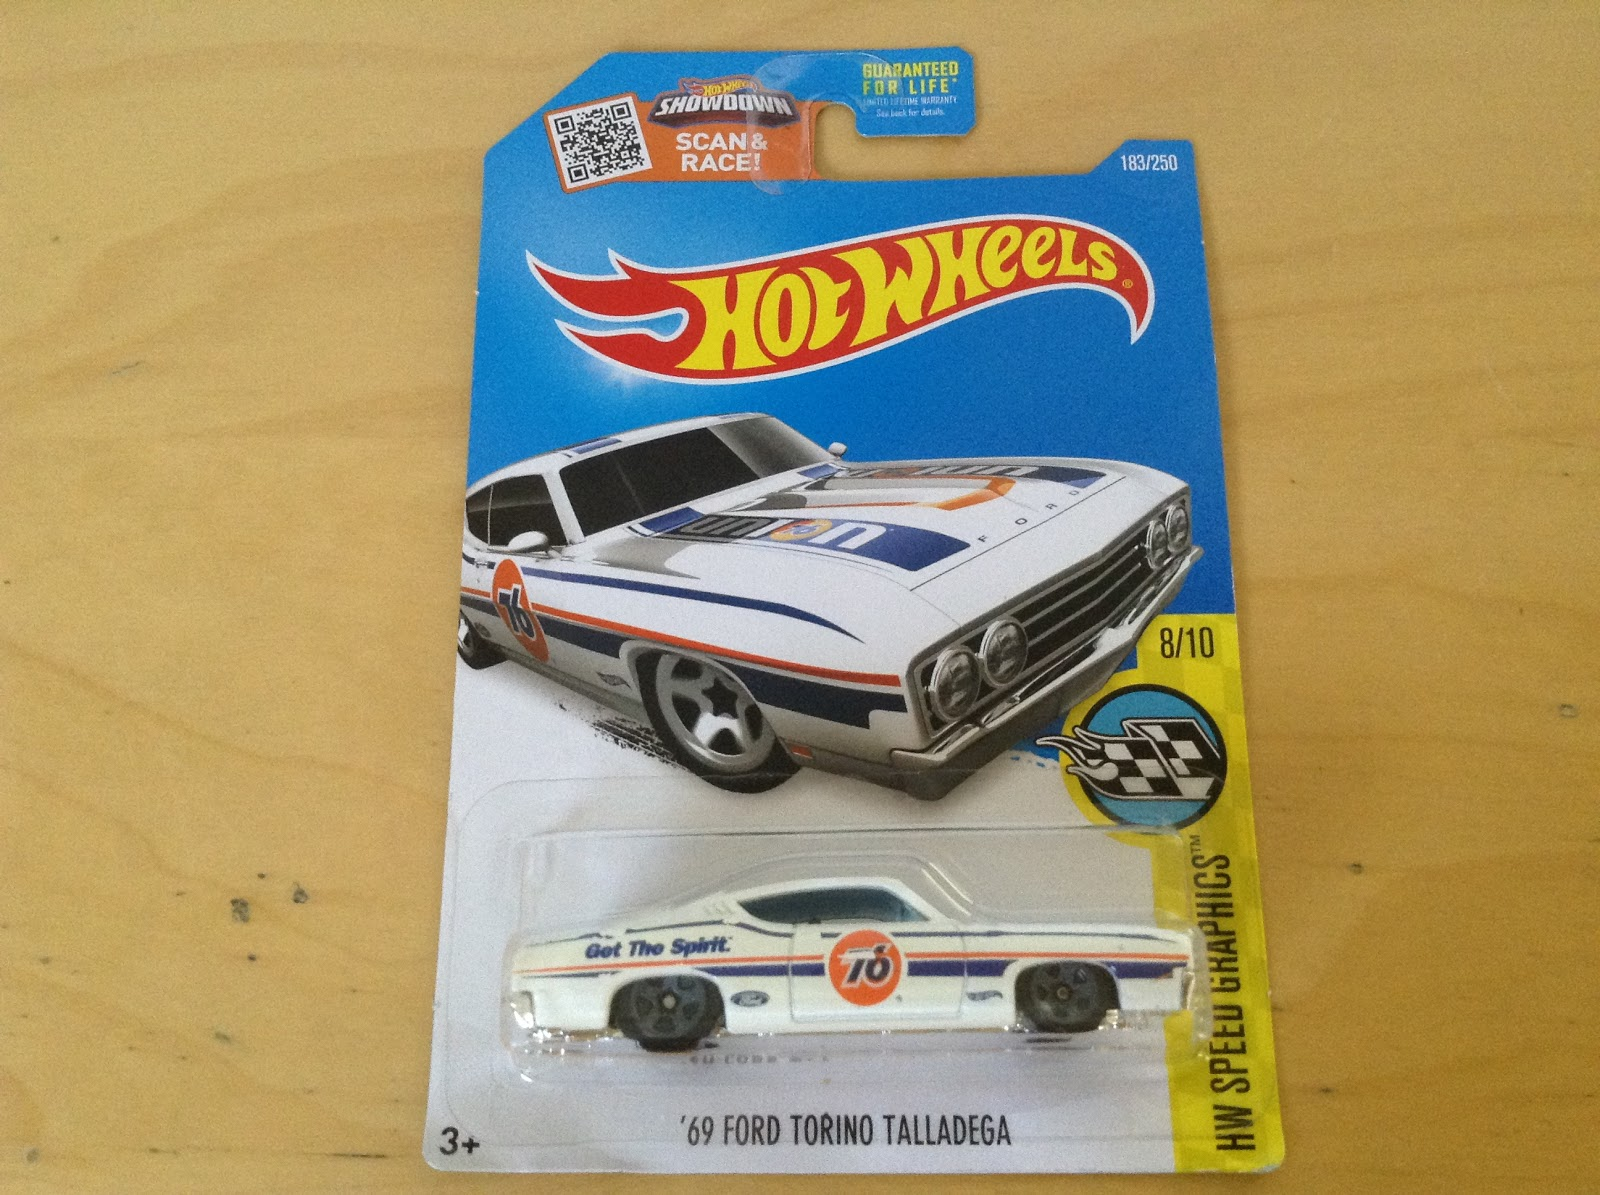 Julian's Hot Wheels Blog: 1969 Ford Torino Talladega (2016